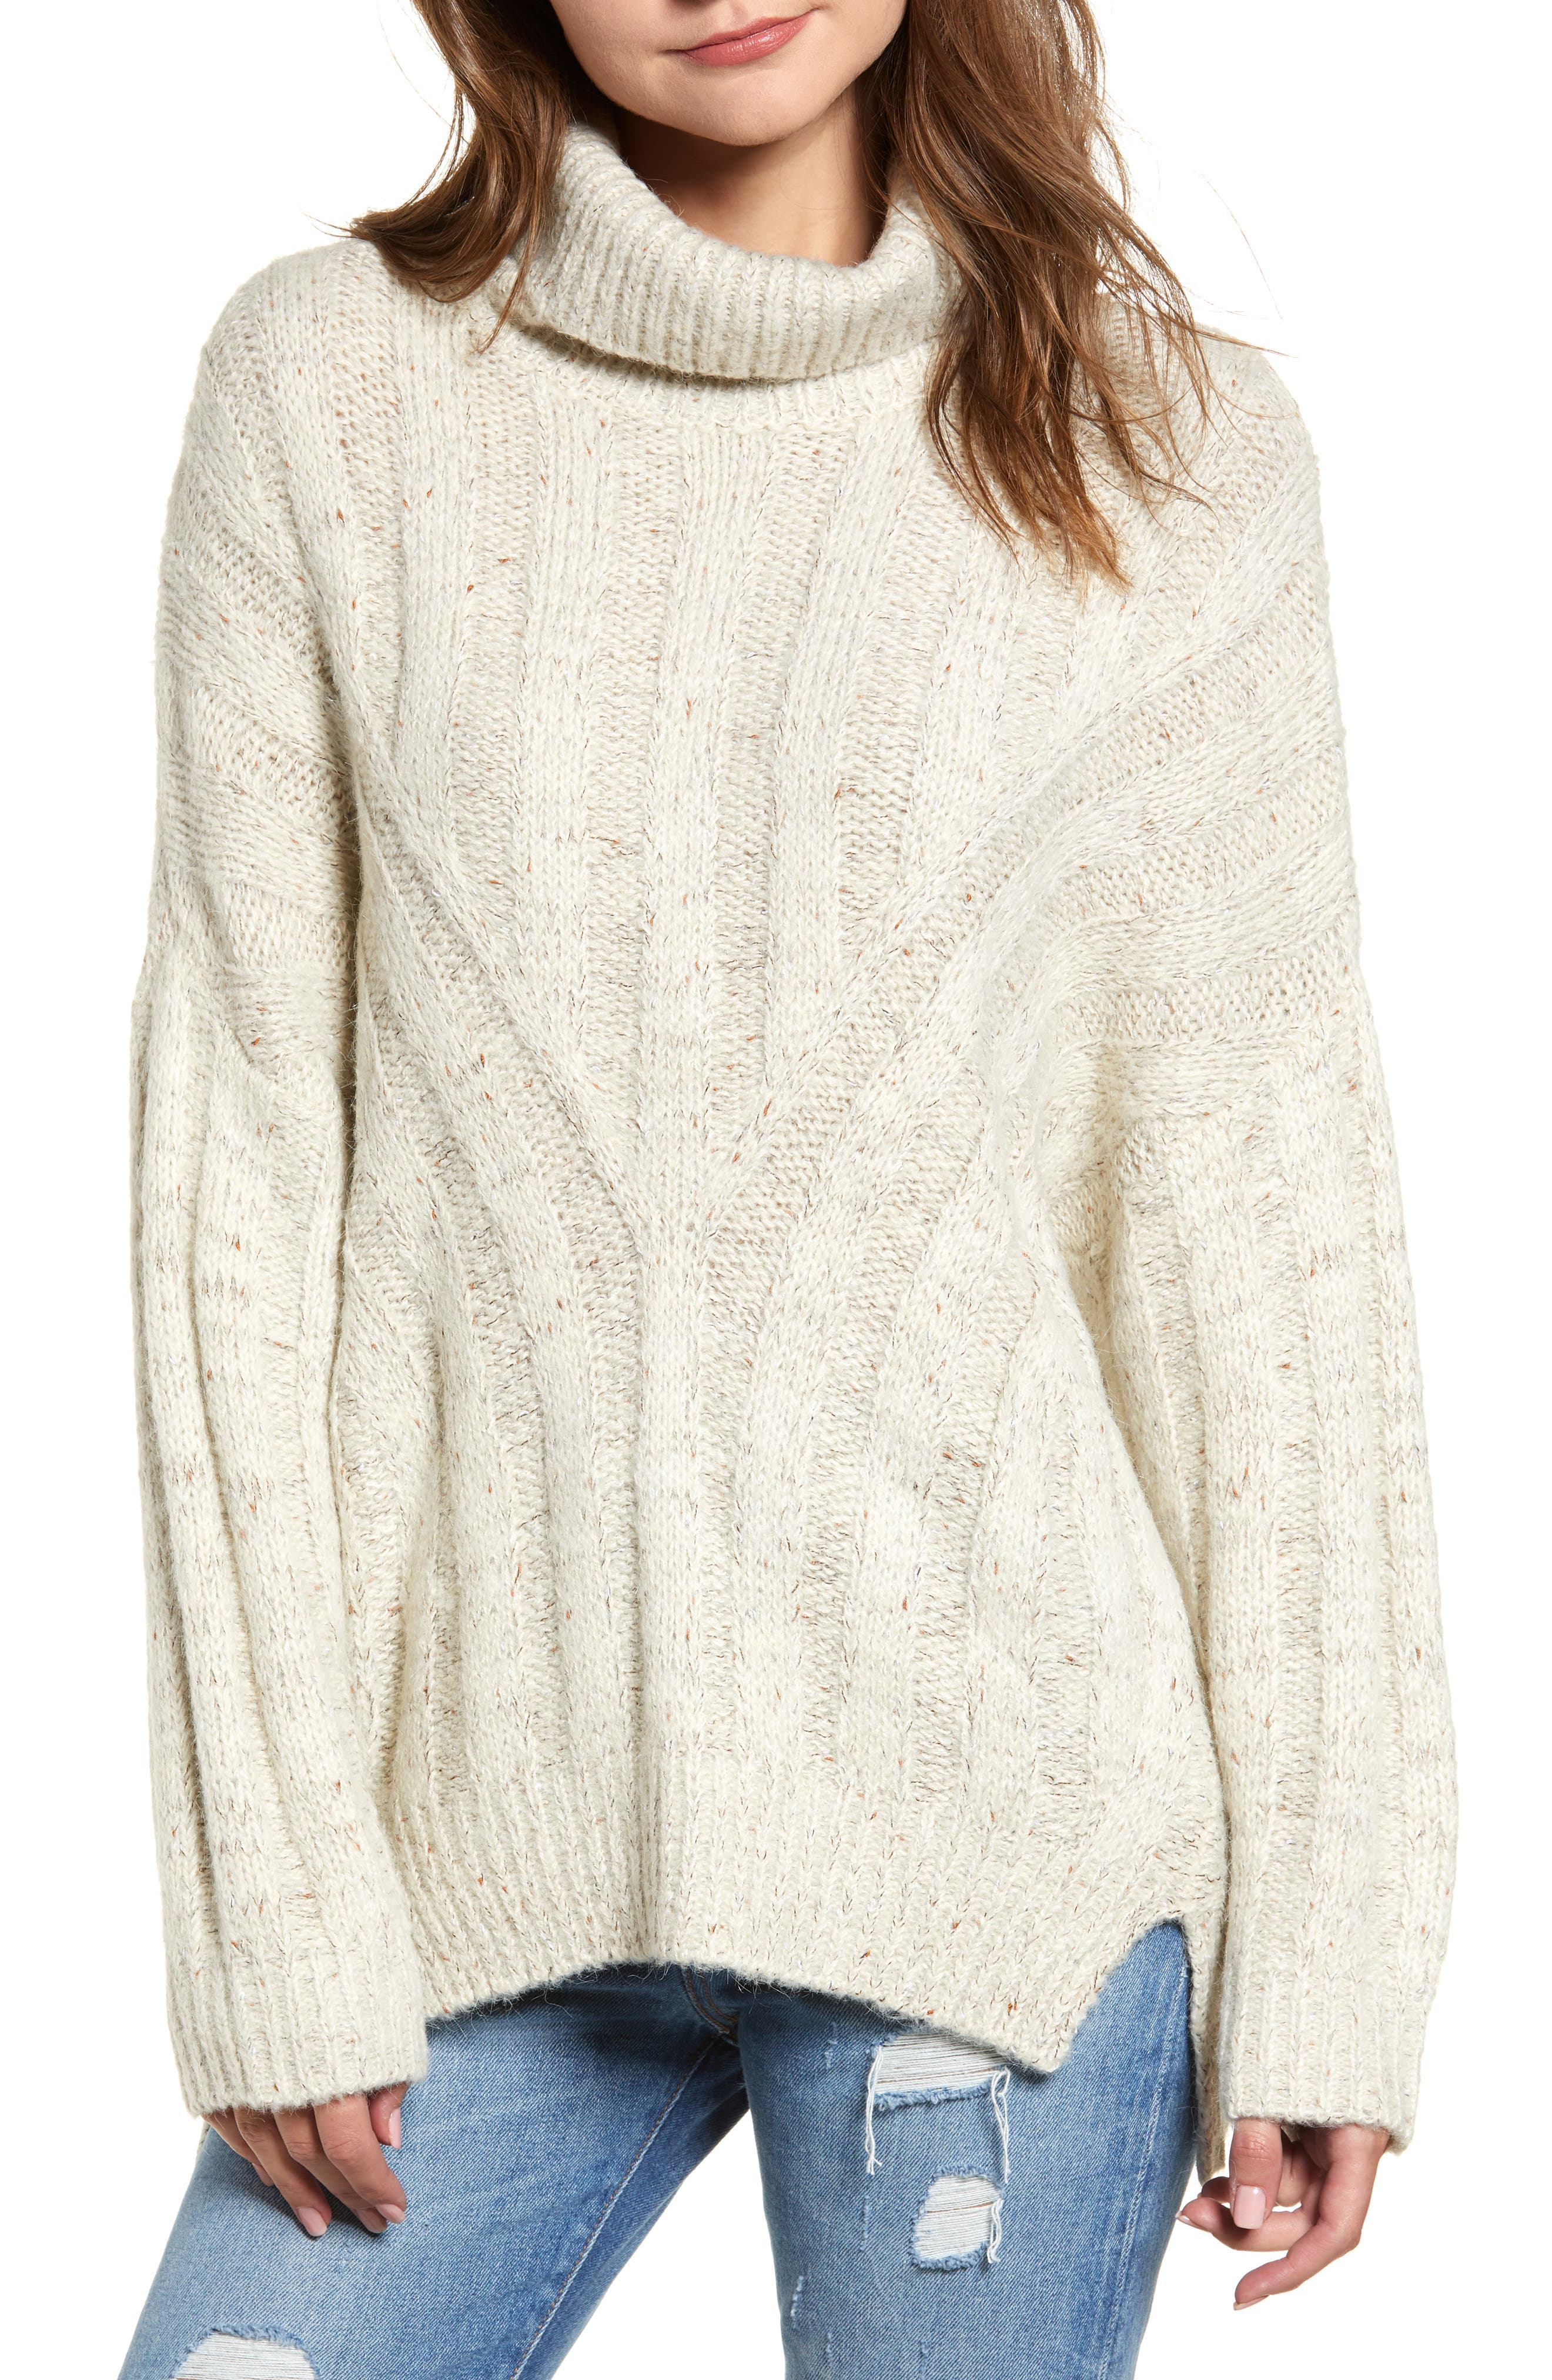 Oversized Turtleneck Sweater,                             Main thumbnail 1, color,                             250